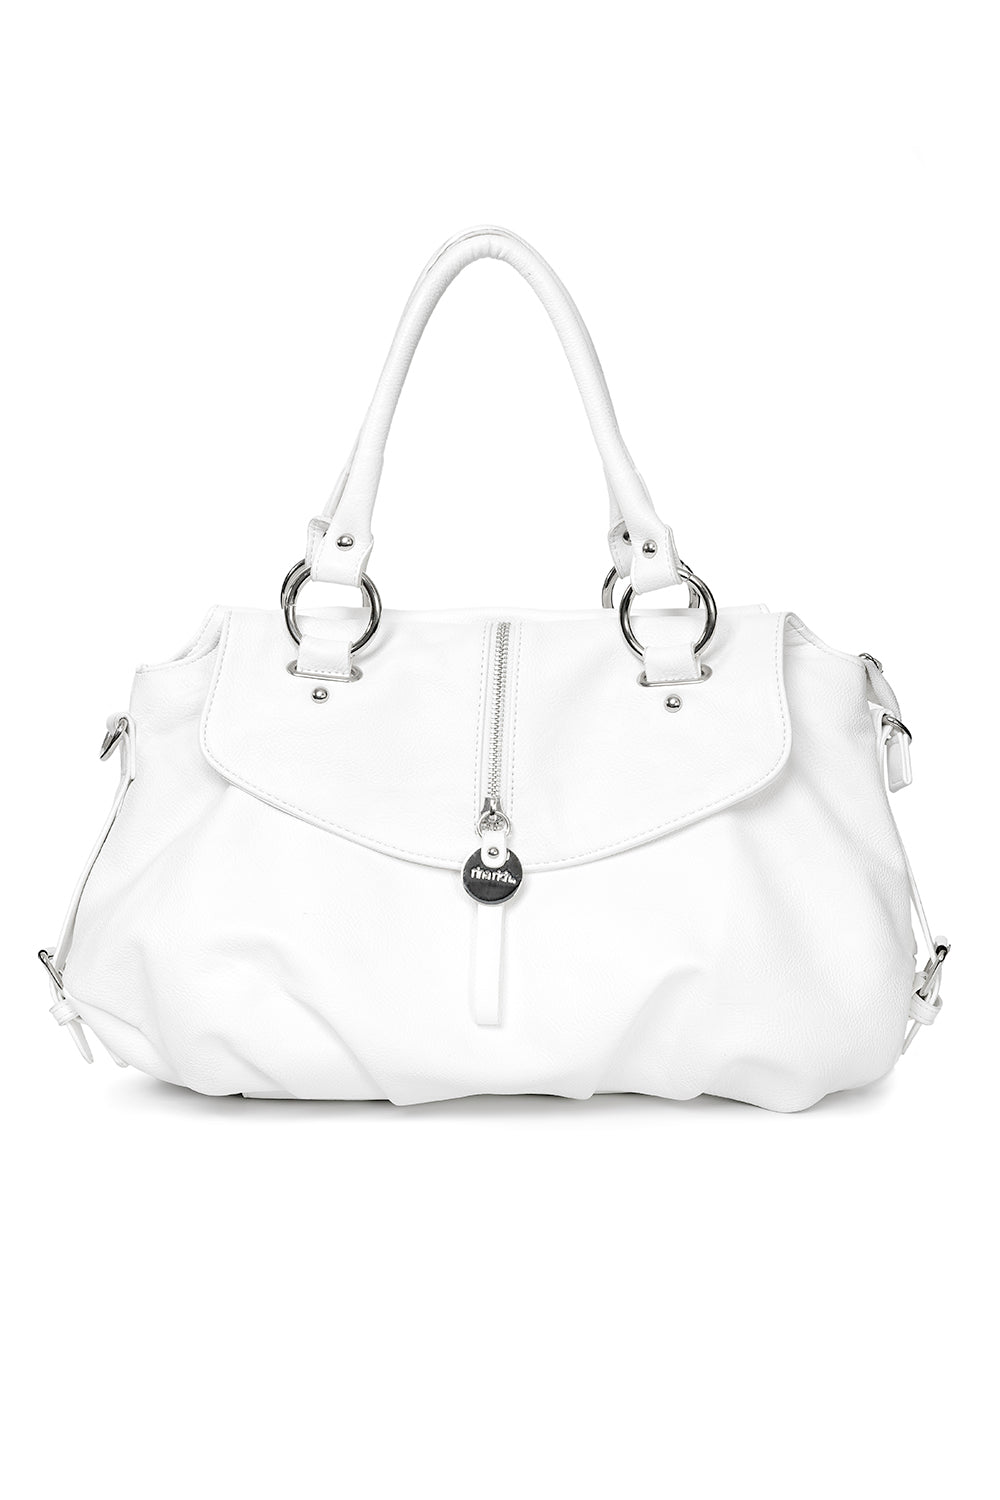 Type 4 Marshmallow Handbag